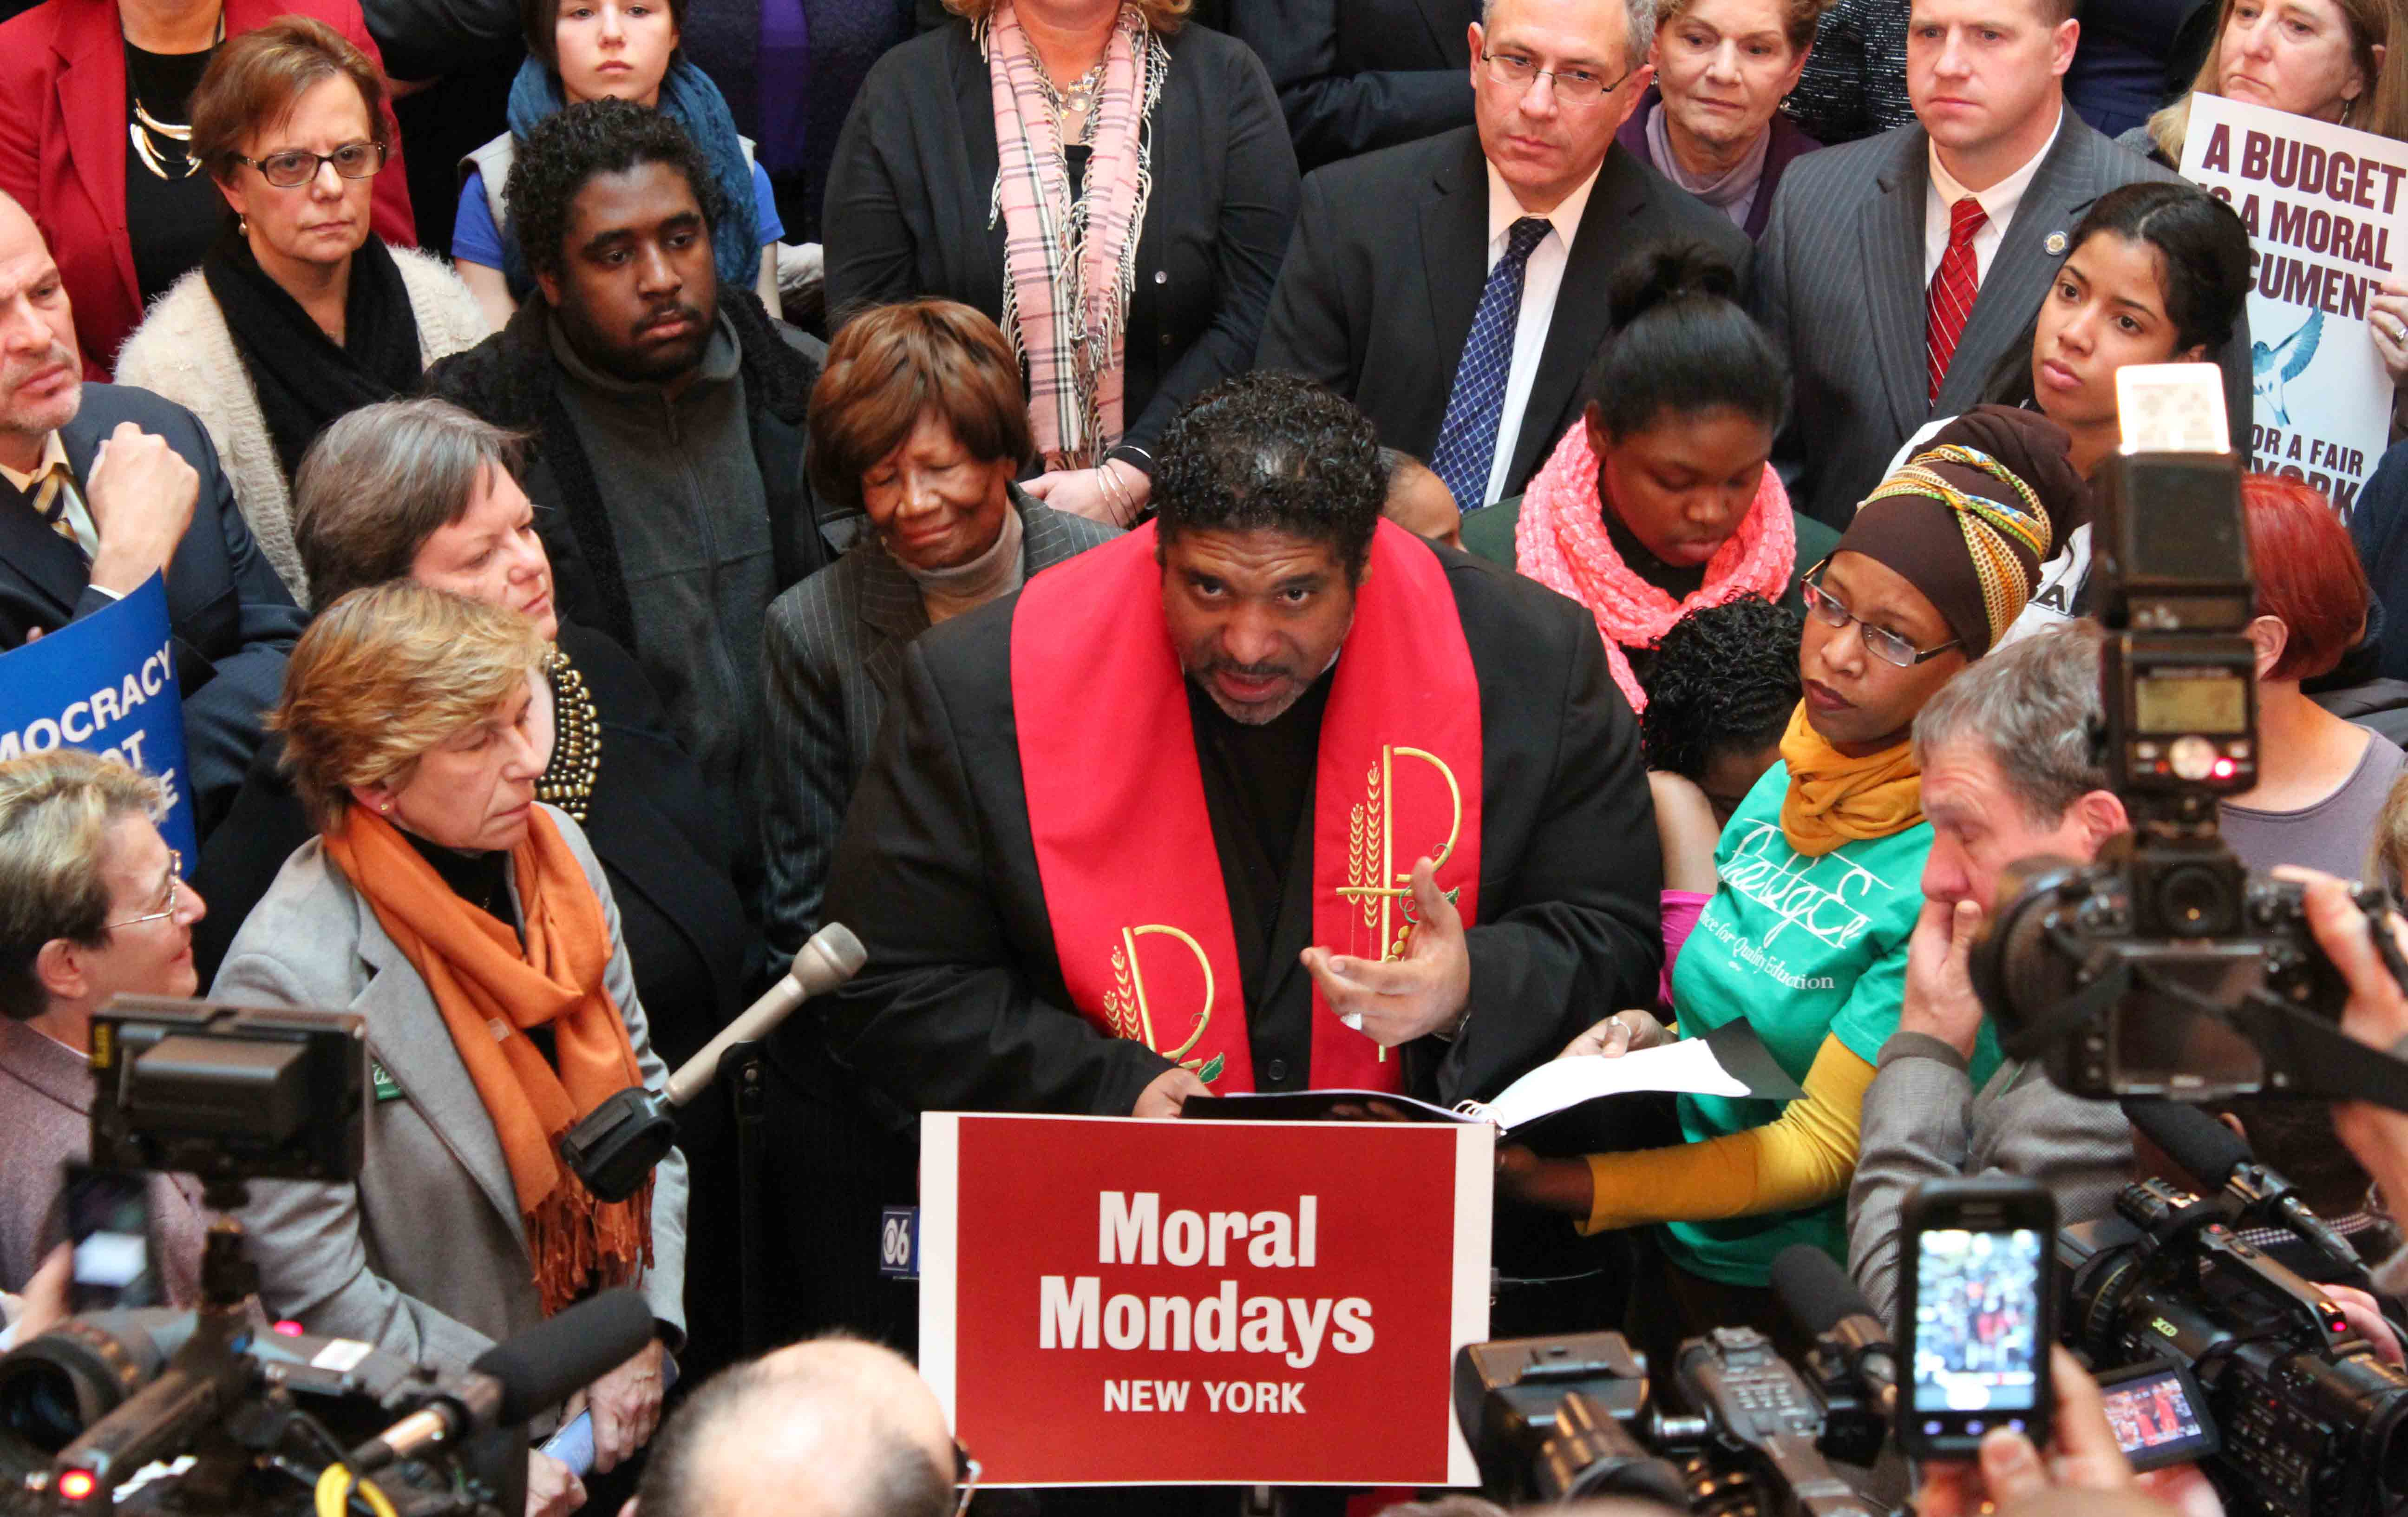 National movement: Rev. William Barber (center) speaks to media at a Moral Monday rally in Albany, New York, in 2014.